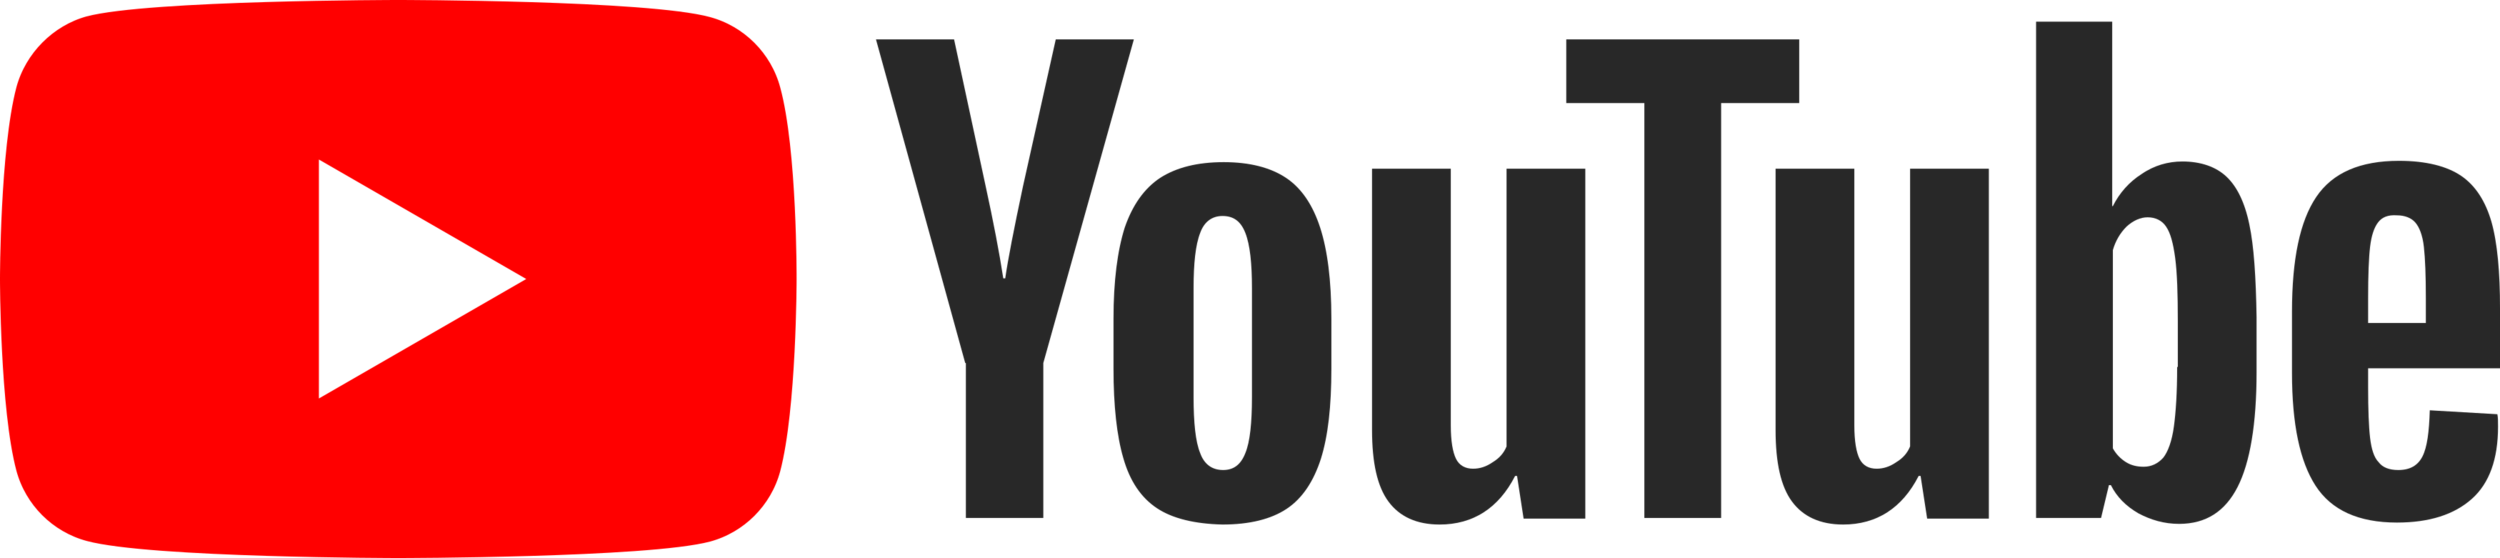 youtube-logo- png.png